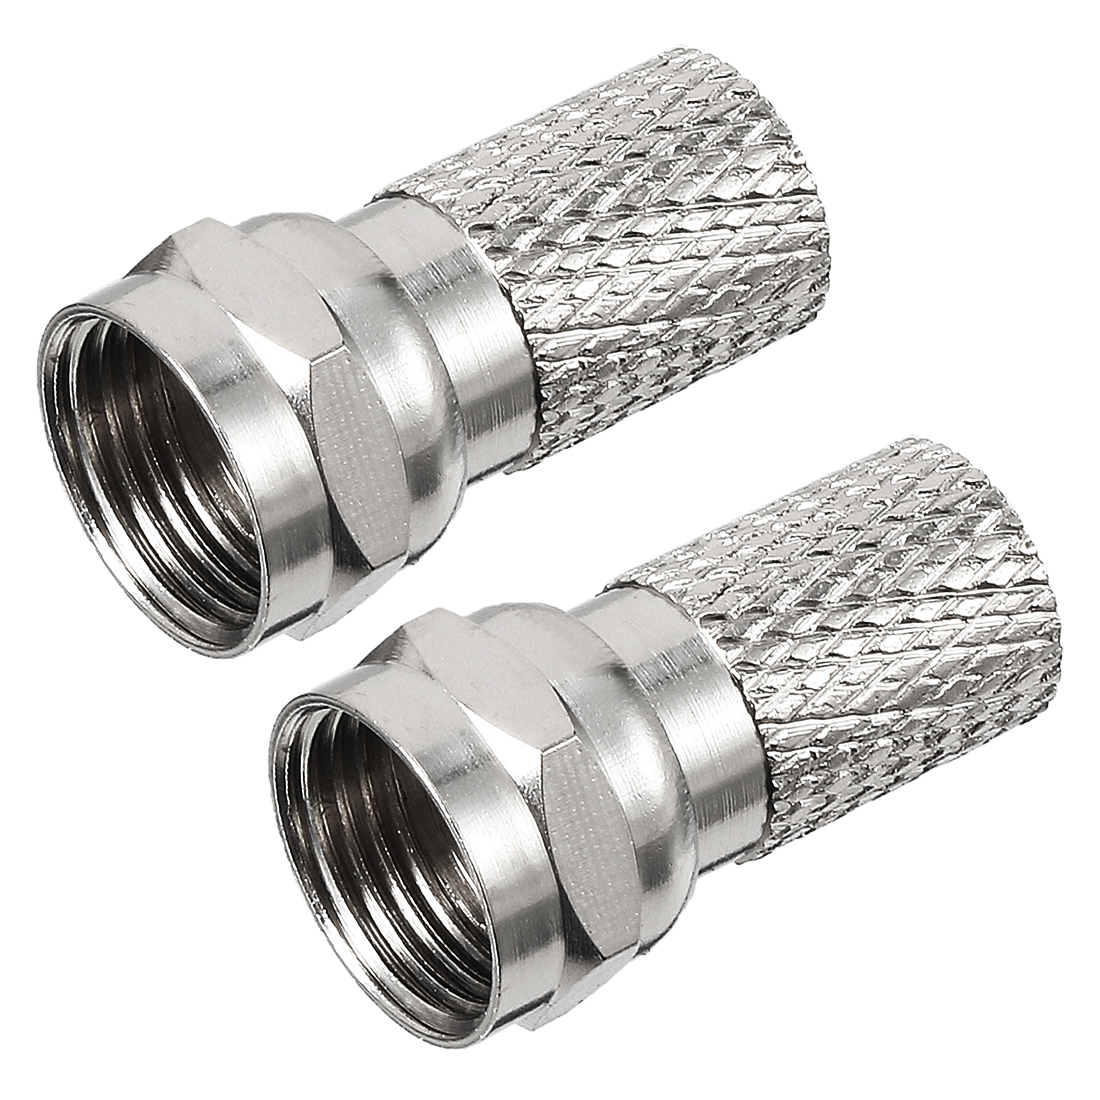 2pcs Silver Tone BSP F Male Jack RF Coax Cable Coaxial Adapter Connector